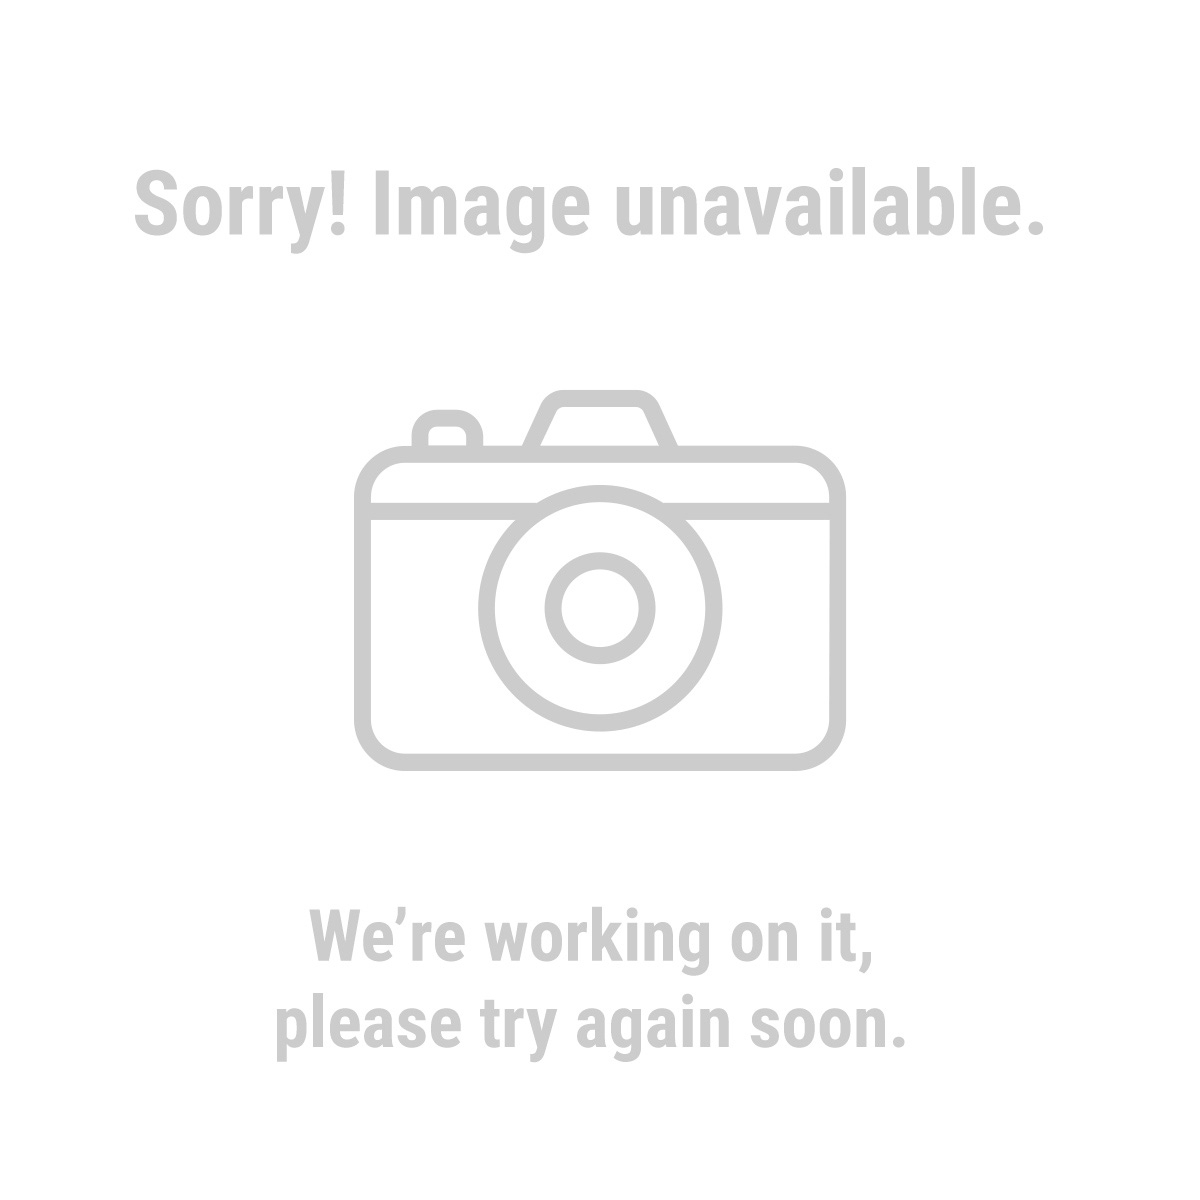 Handstands 98034 Pack of 4 Vent Sticks - Pina Colada, Mango Mandarin